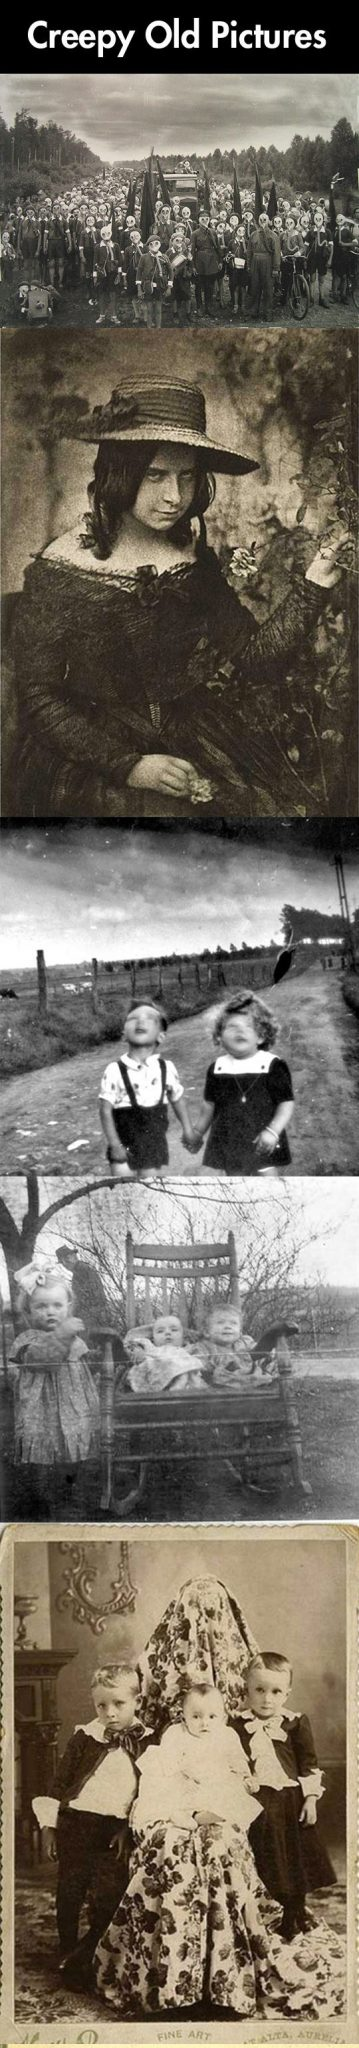 Creepy old pictures